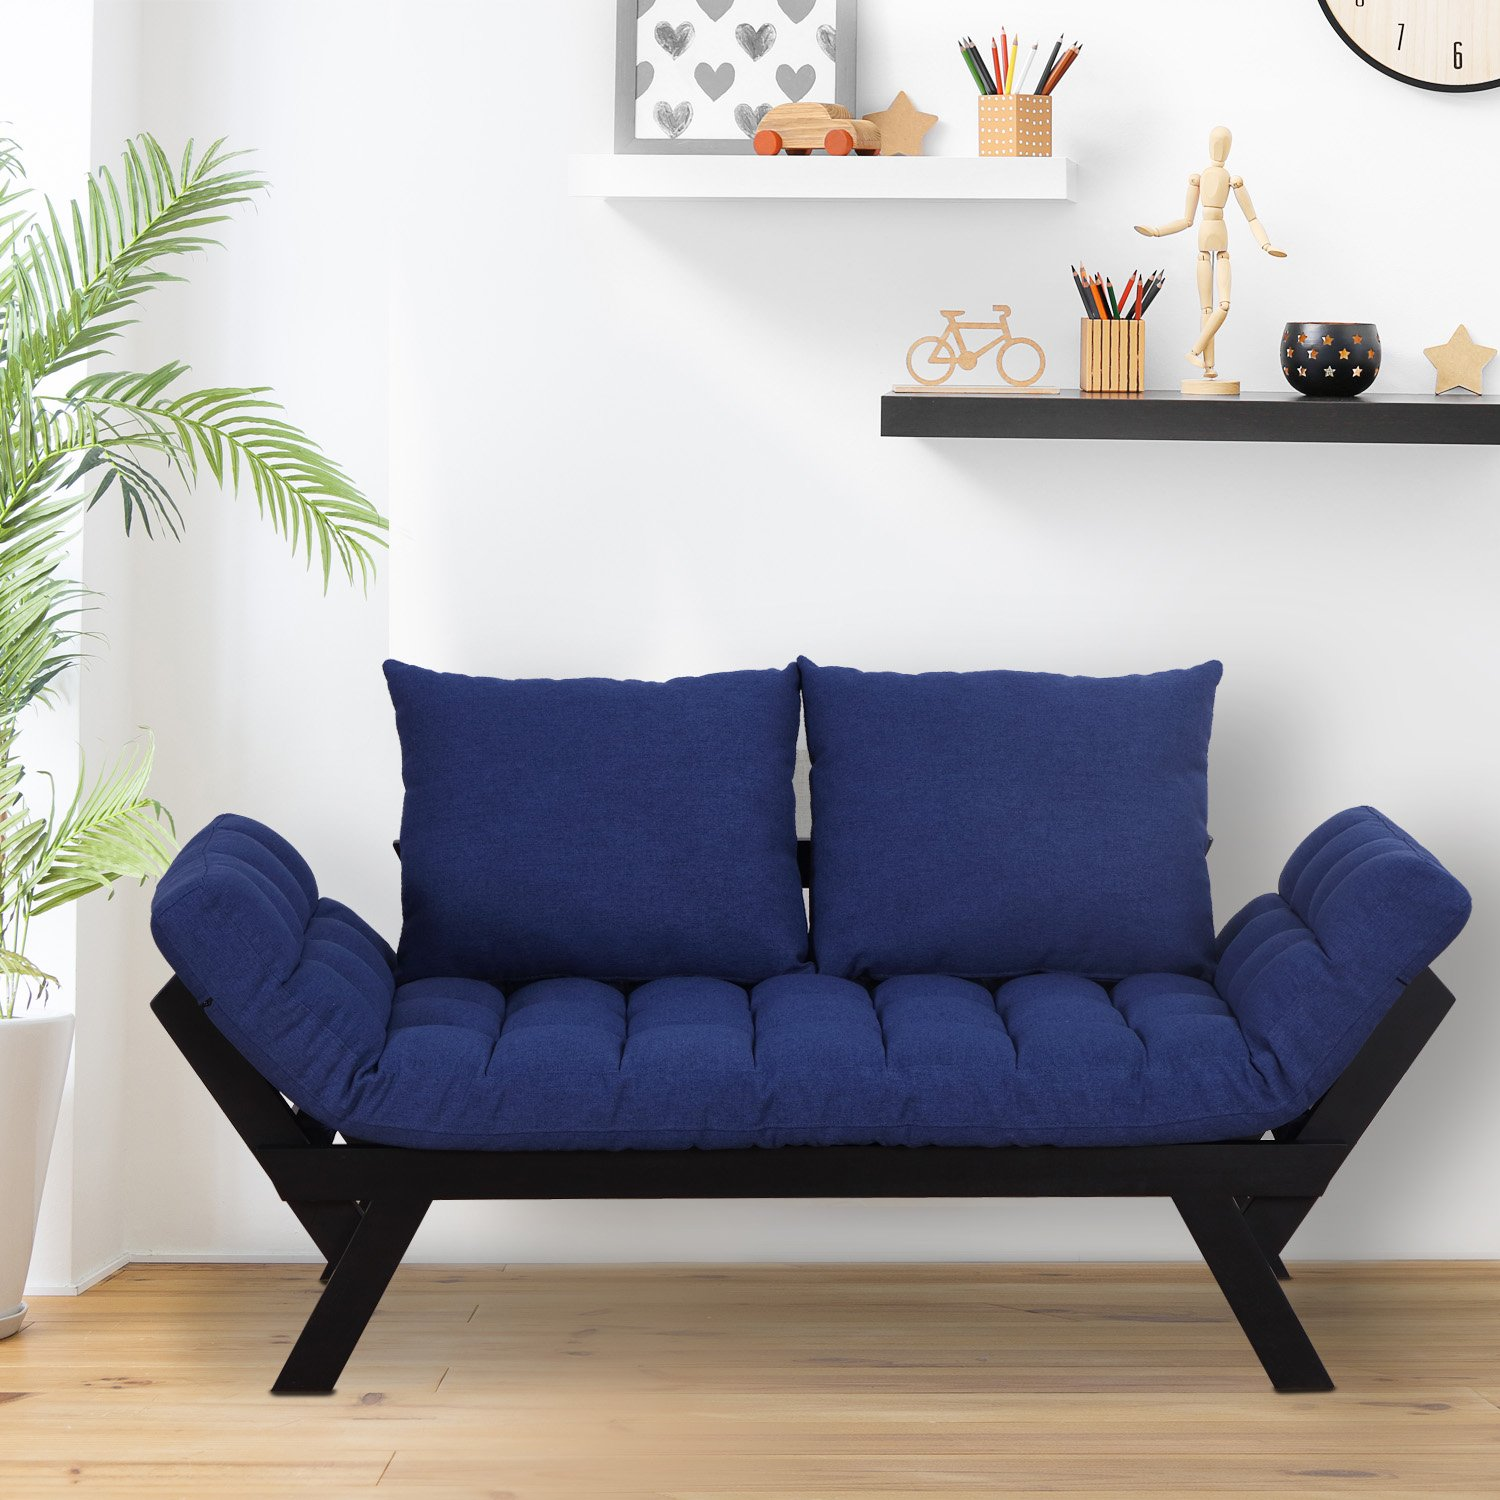 HOMCOM 3 Position Convertible Chaise Lounge Sofa Bed – Black Dark Blue